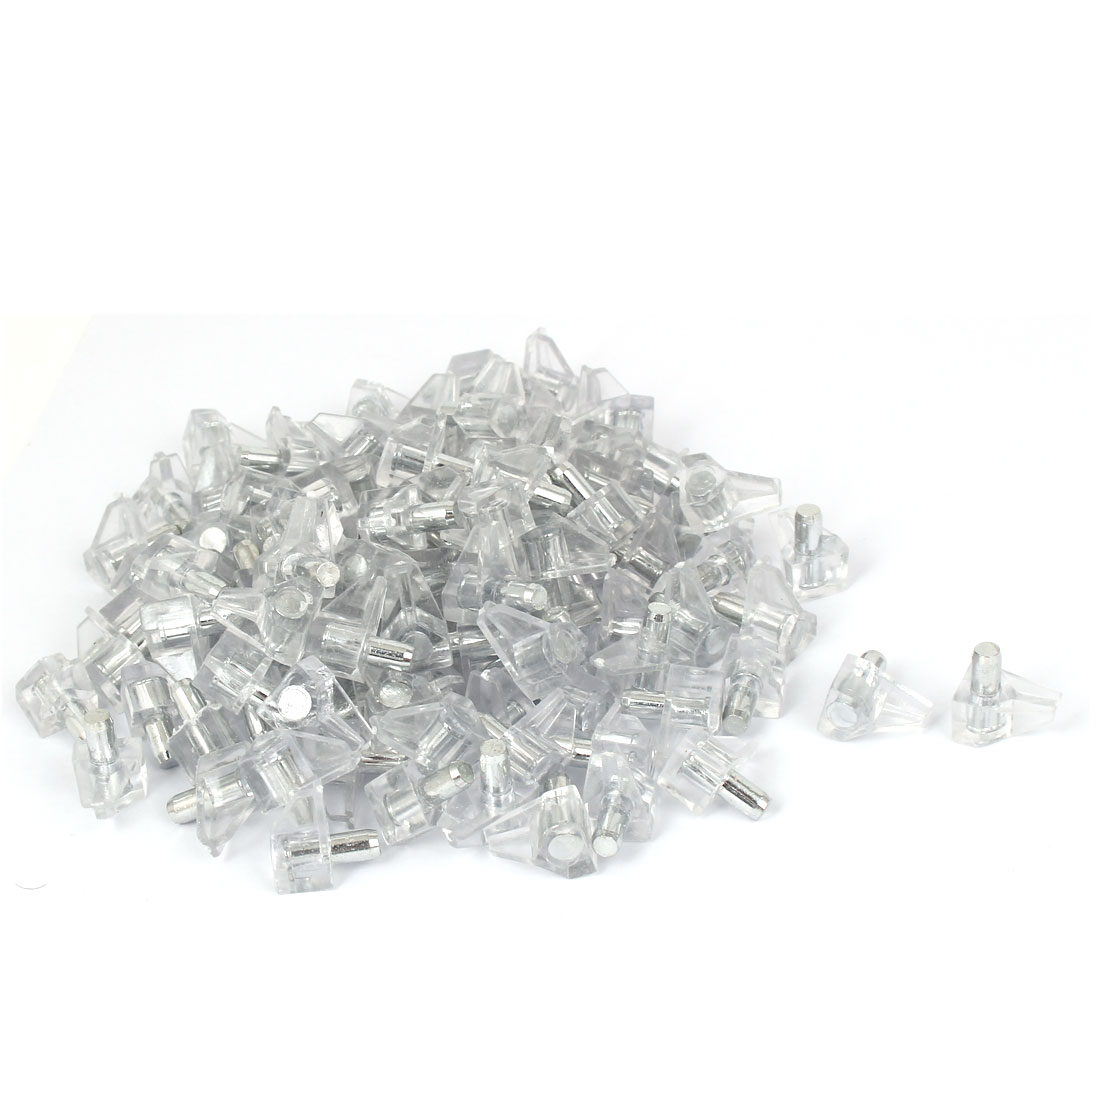 200 Pcs 5mm Dia Support Peg Stud Pins for Kitchen Cupboard Cabinet